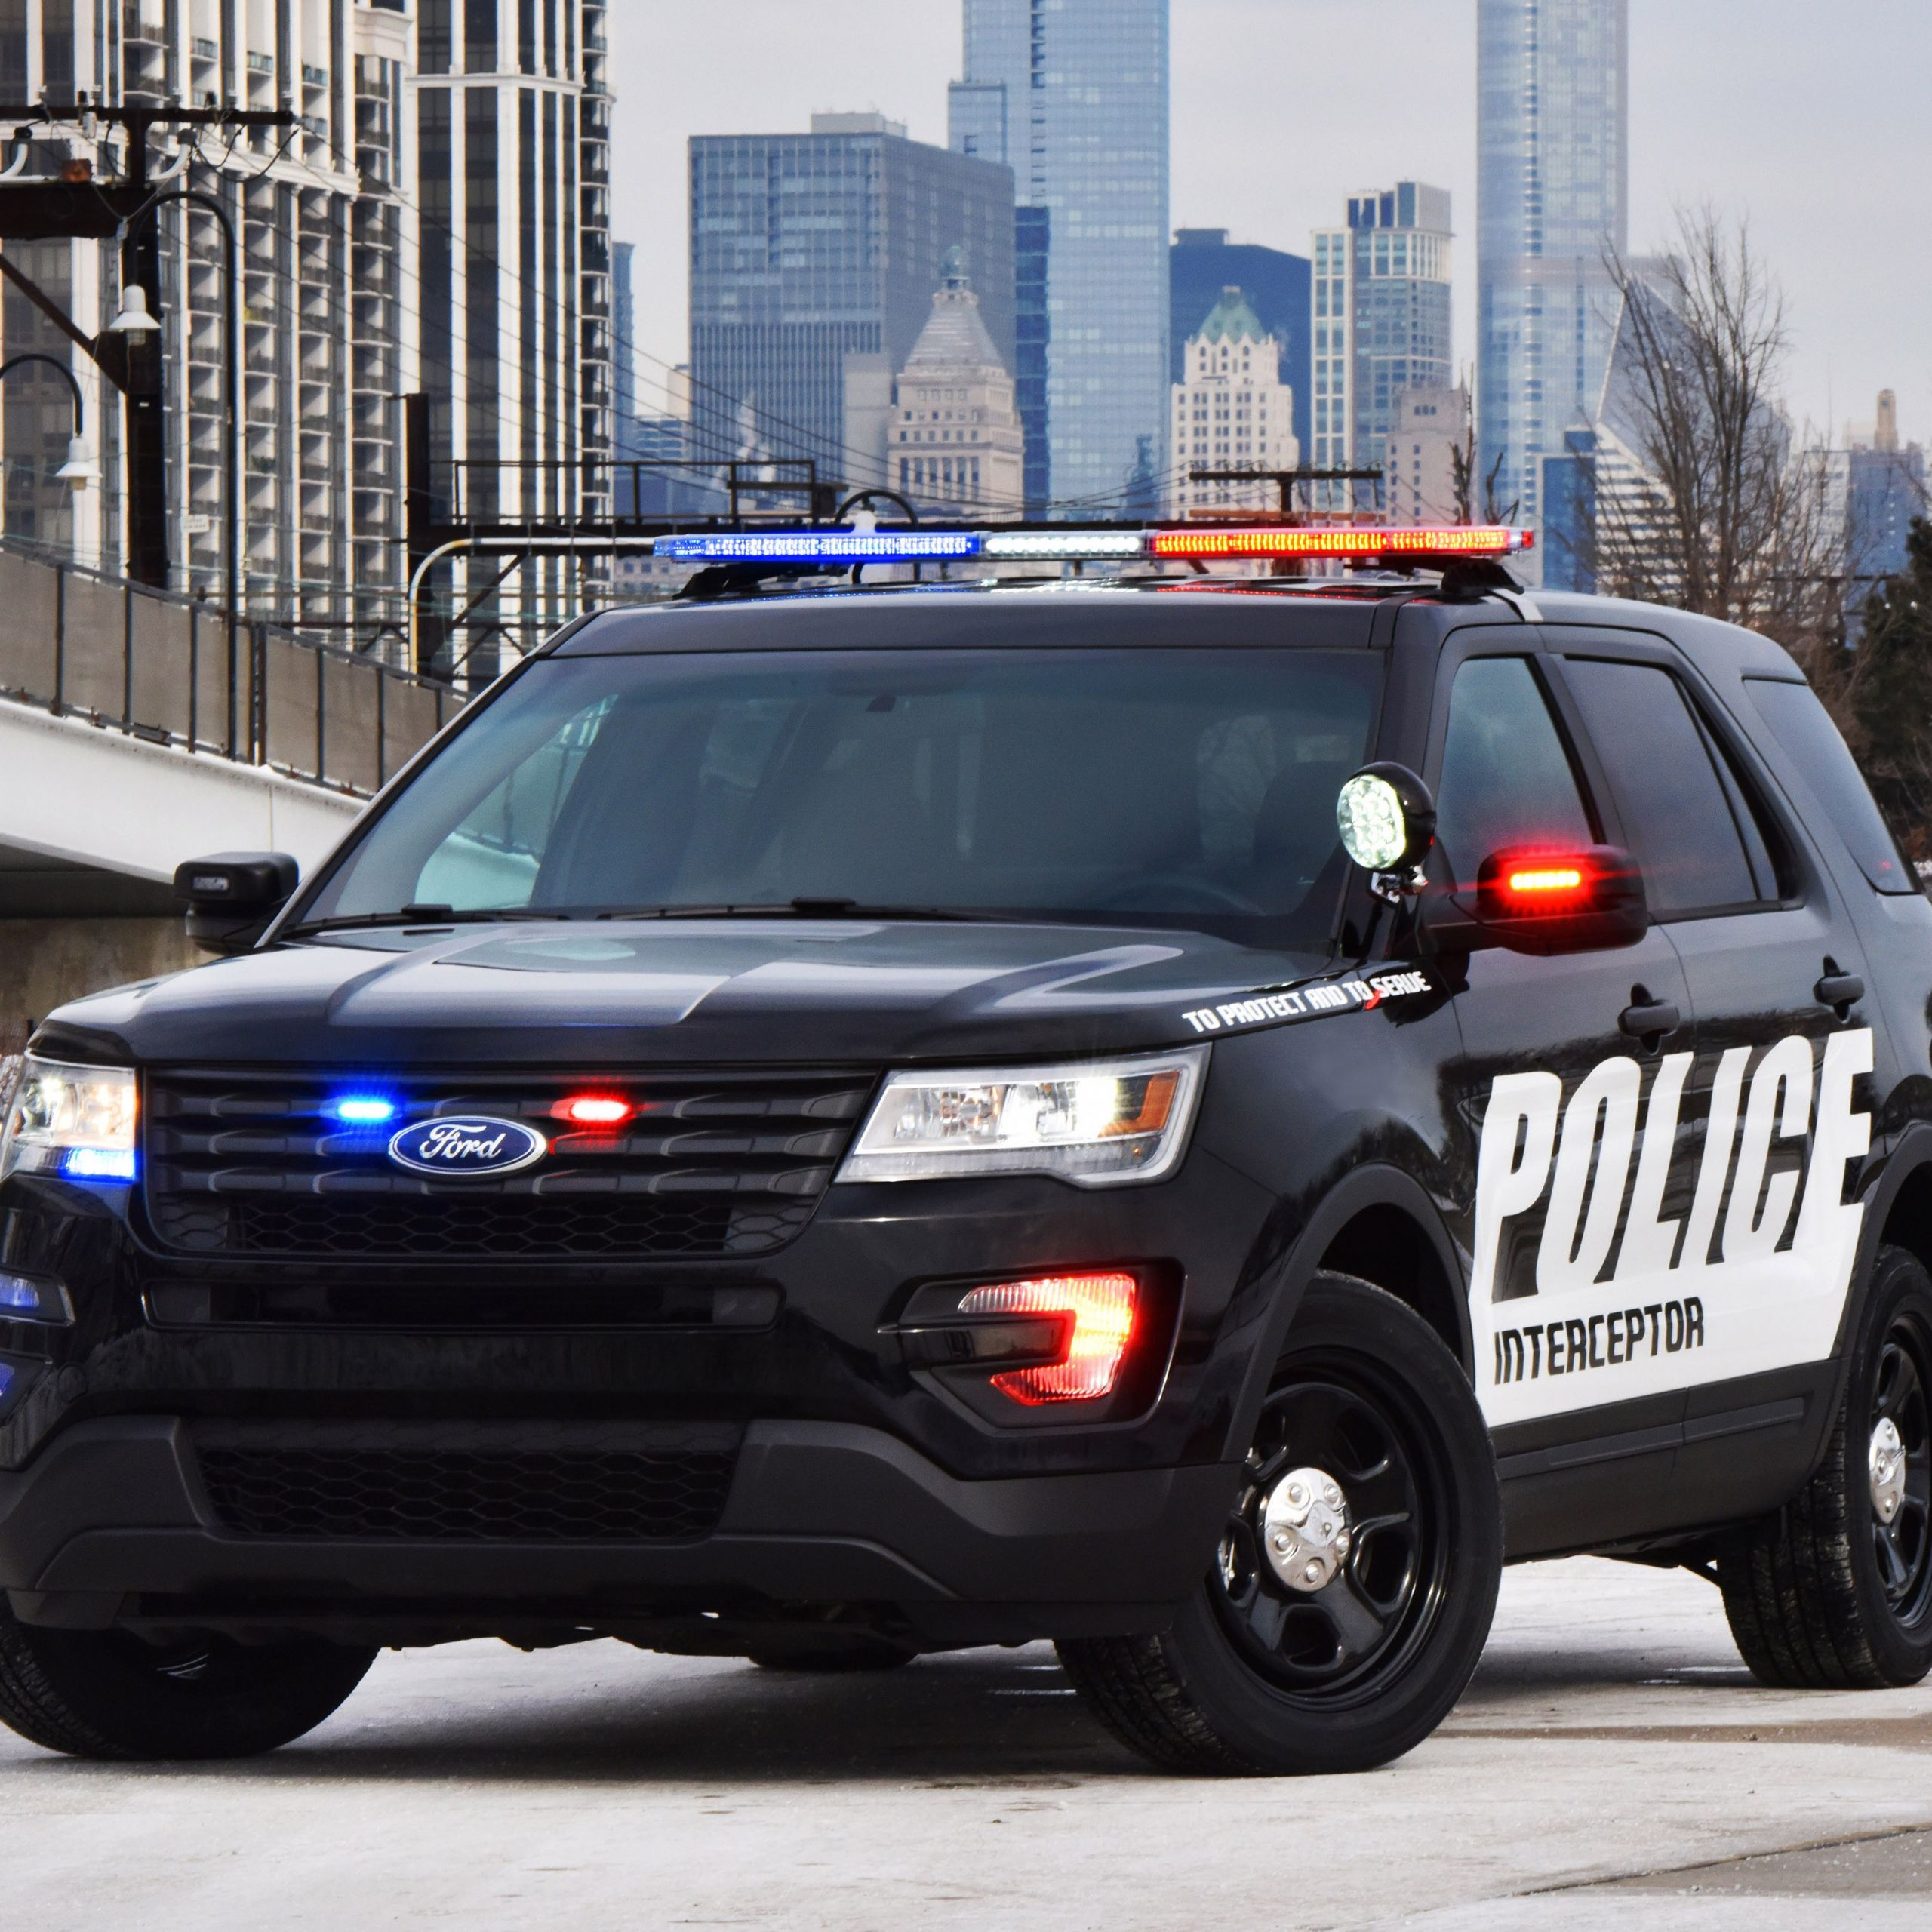 Police Interceptor Cars for Sale Near Me Unique ford Puts Criminals On Notice with New Police Interceptor